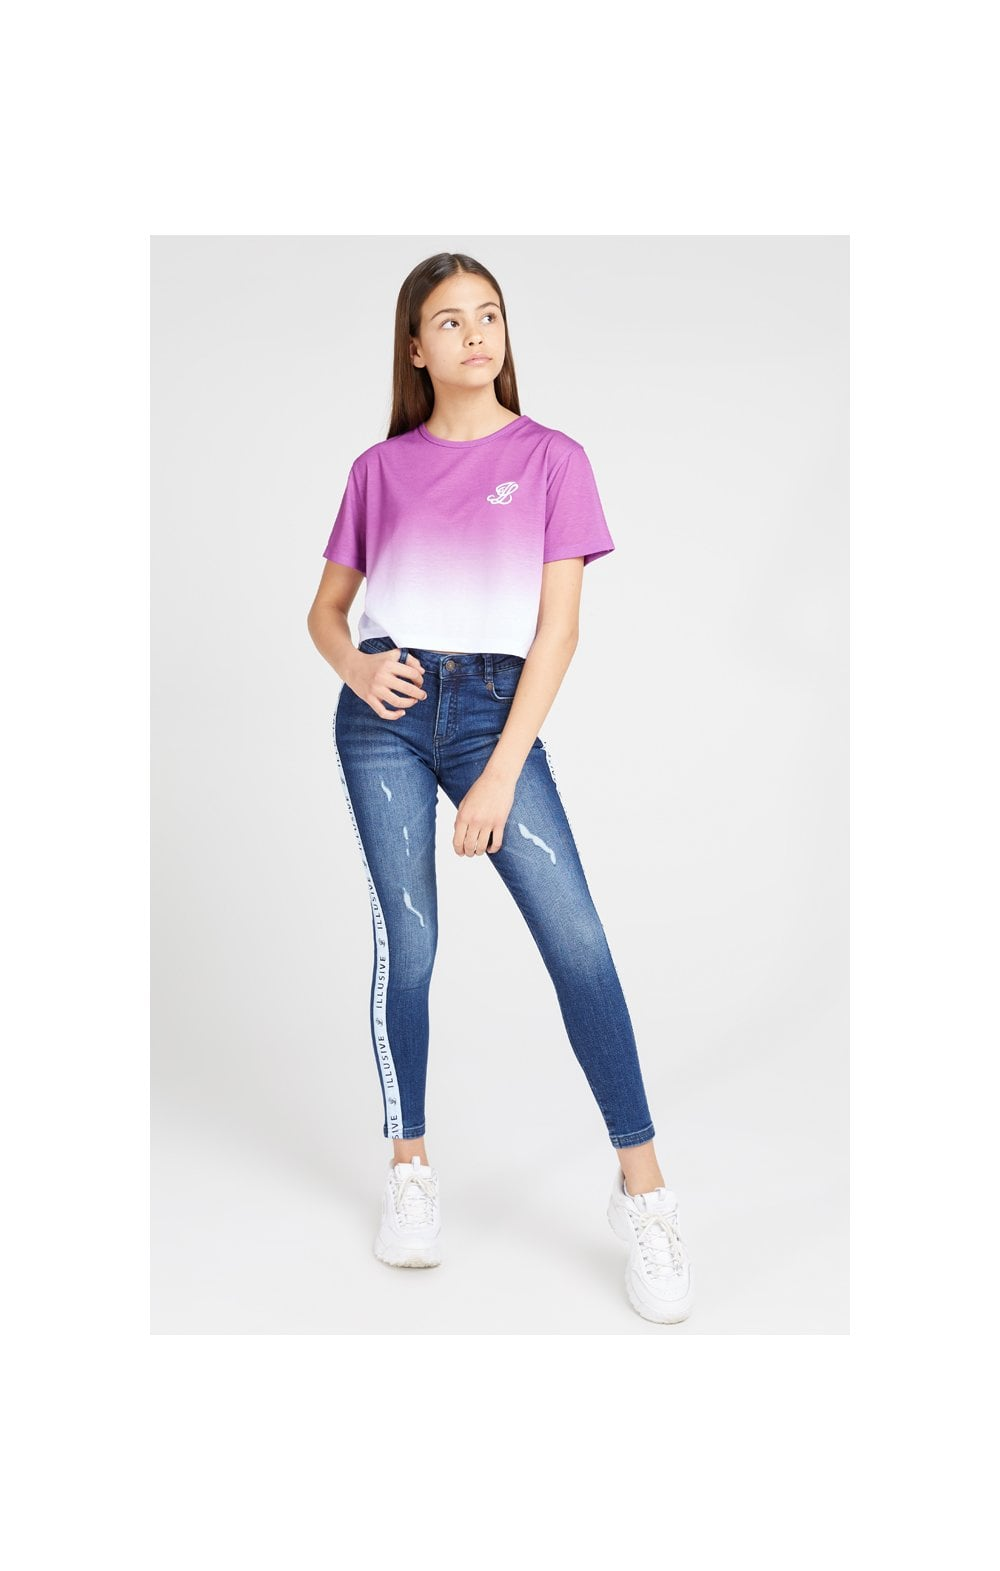 Load image into Gallery viewer, Illusive London Crop Fade Tee - Pink & White (5)